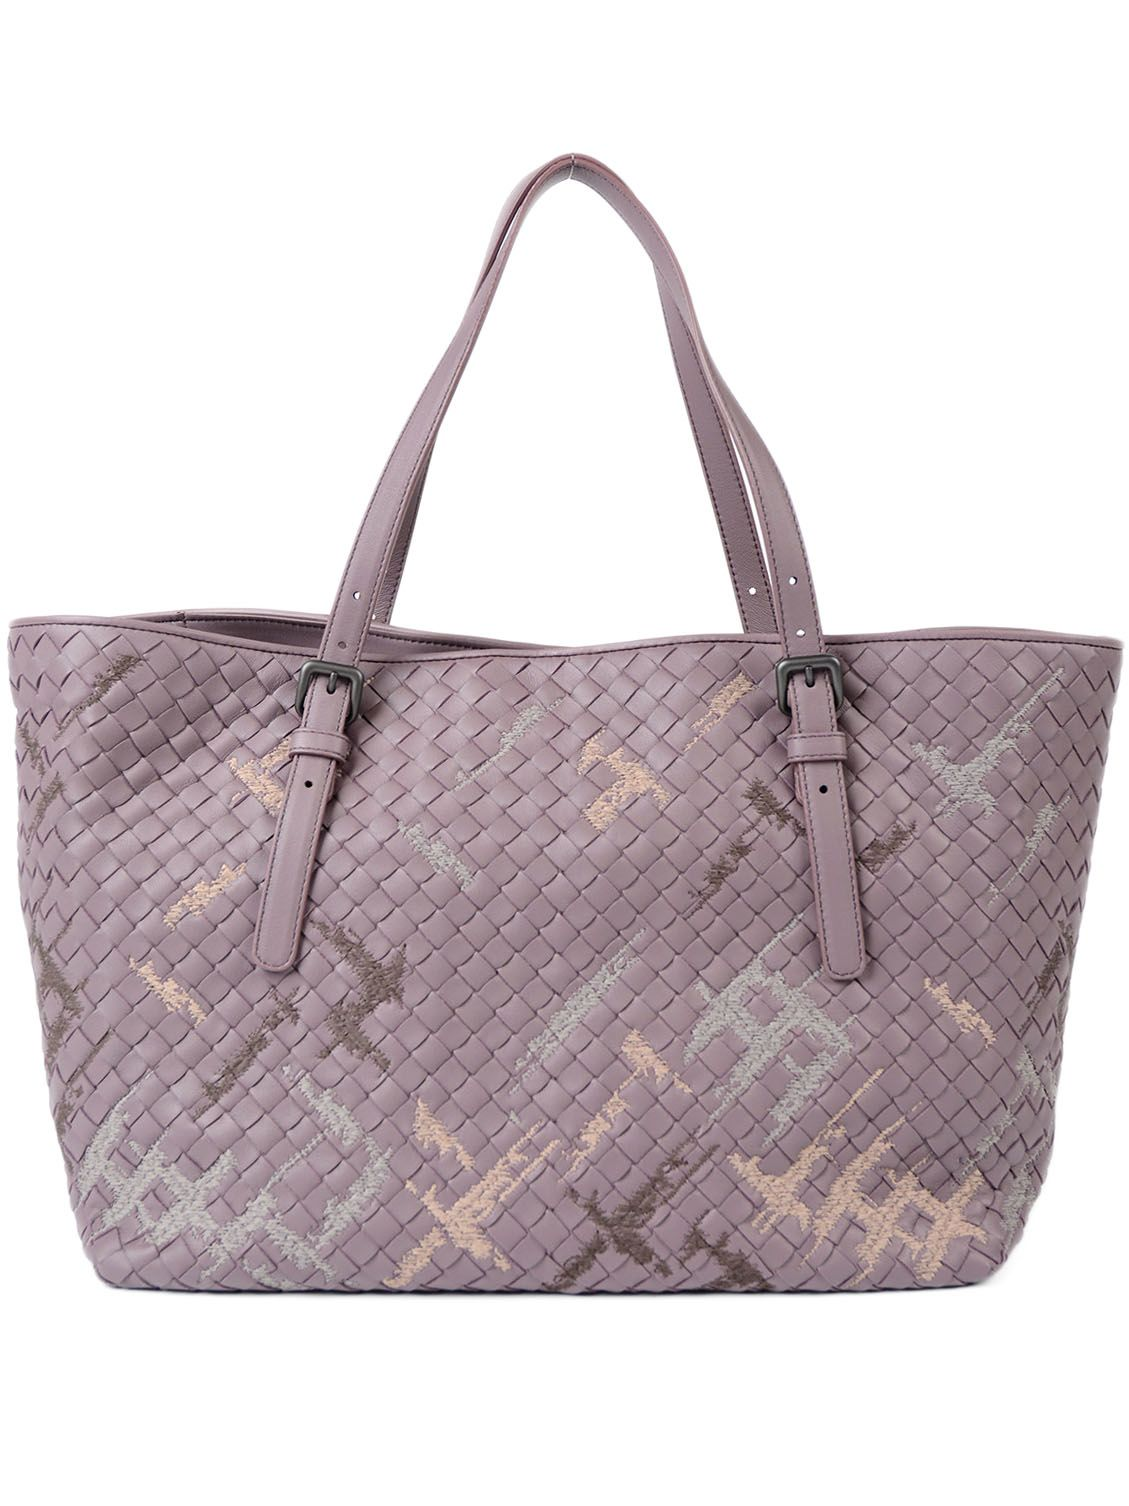 Bottega Veneta Braided Tote